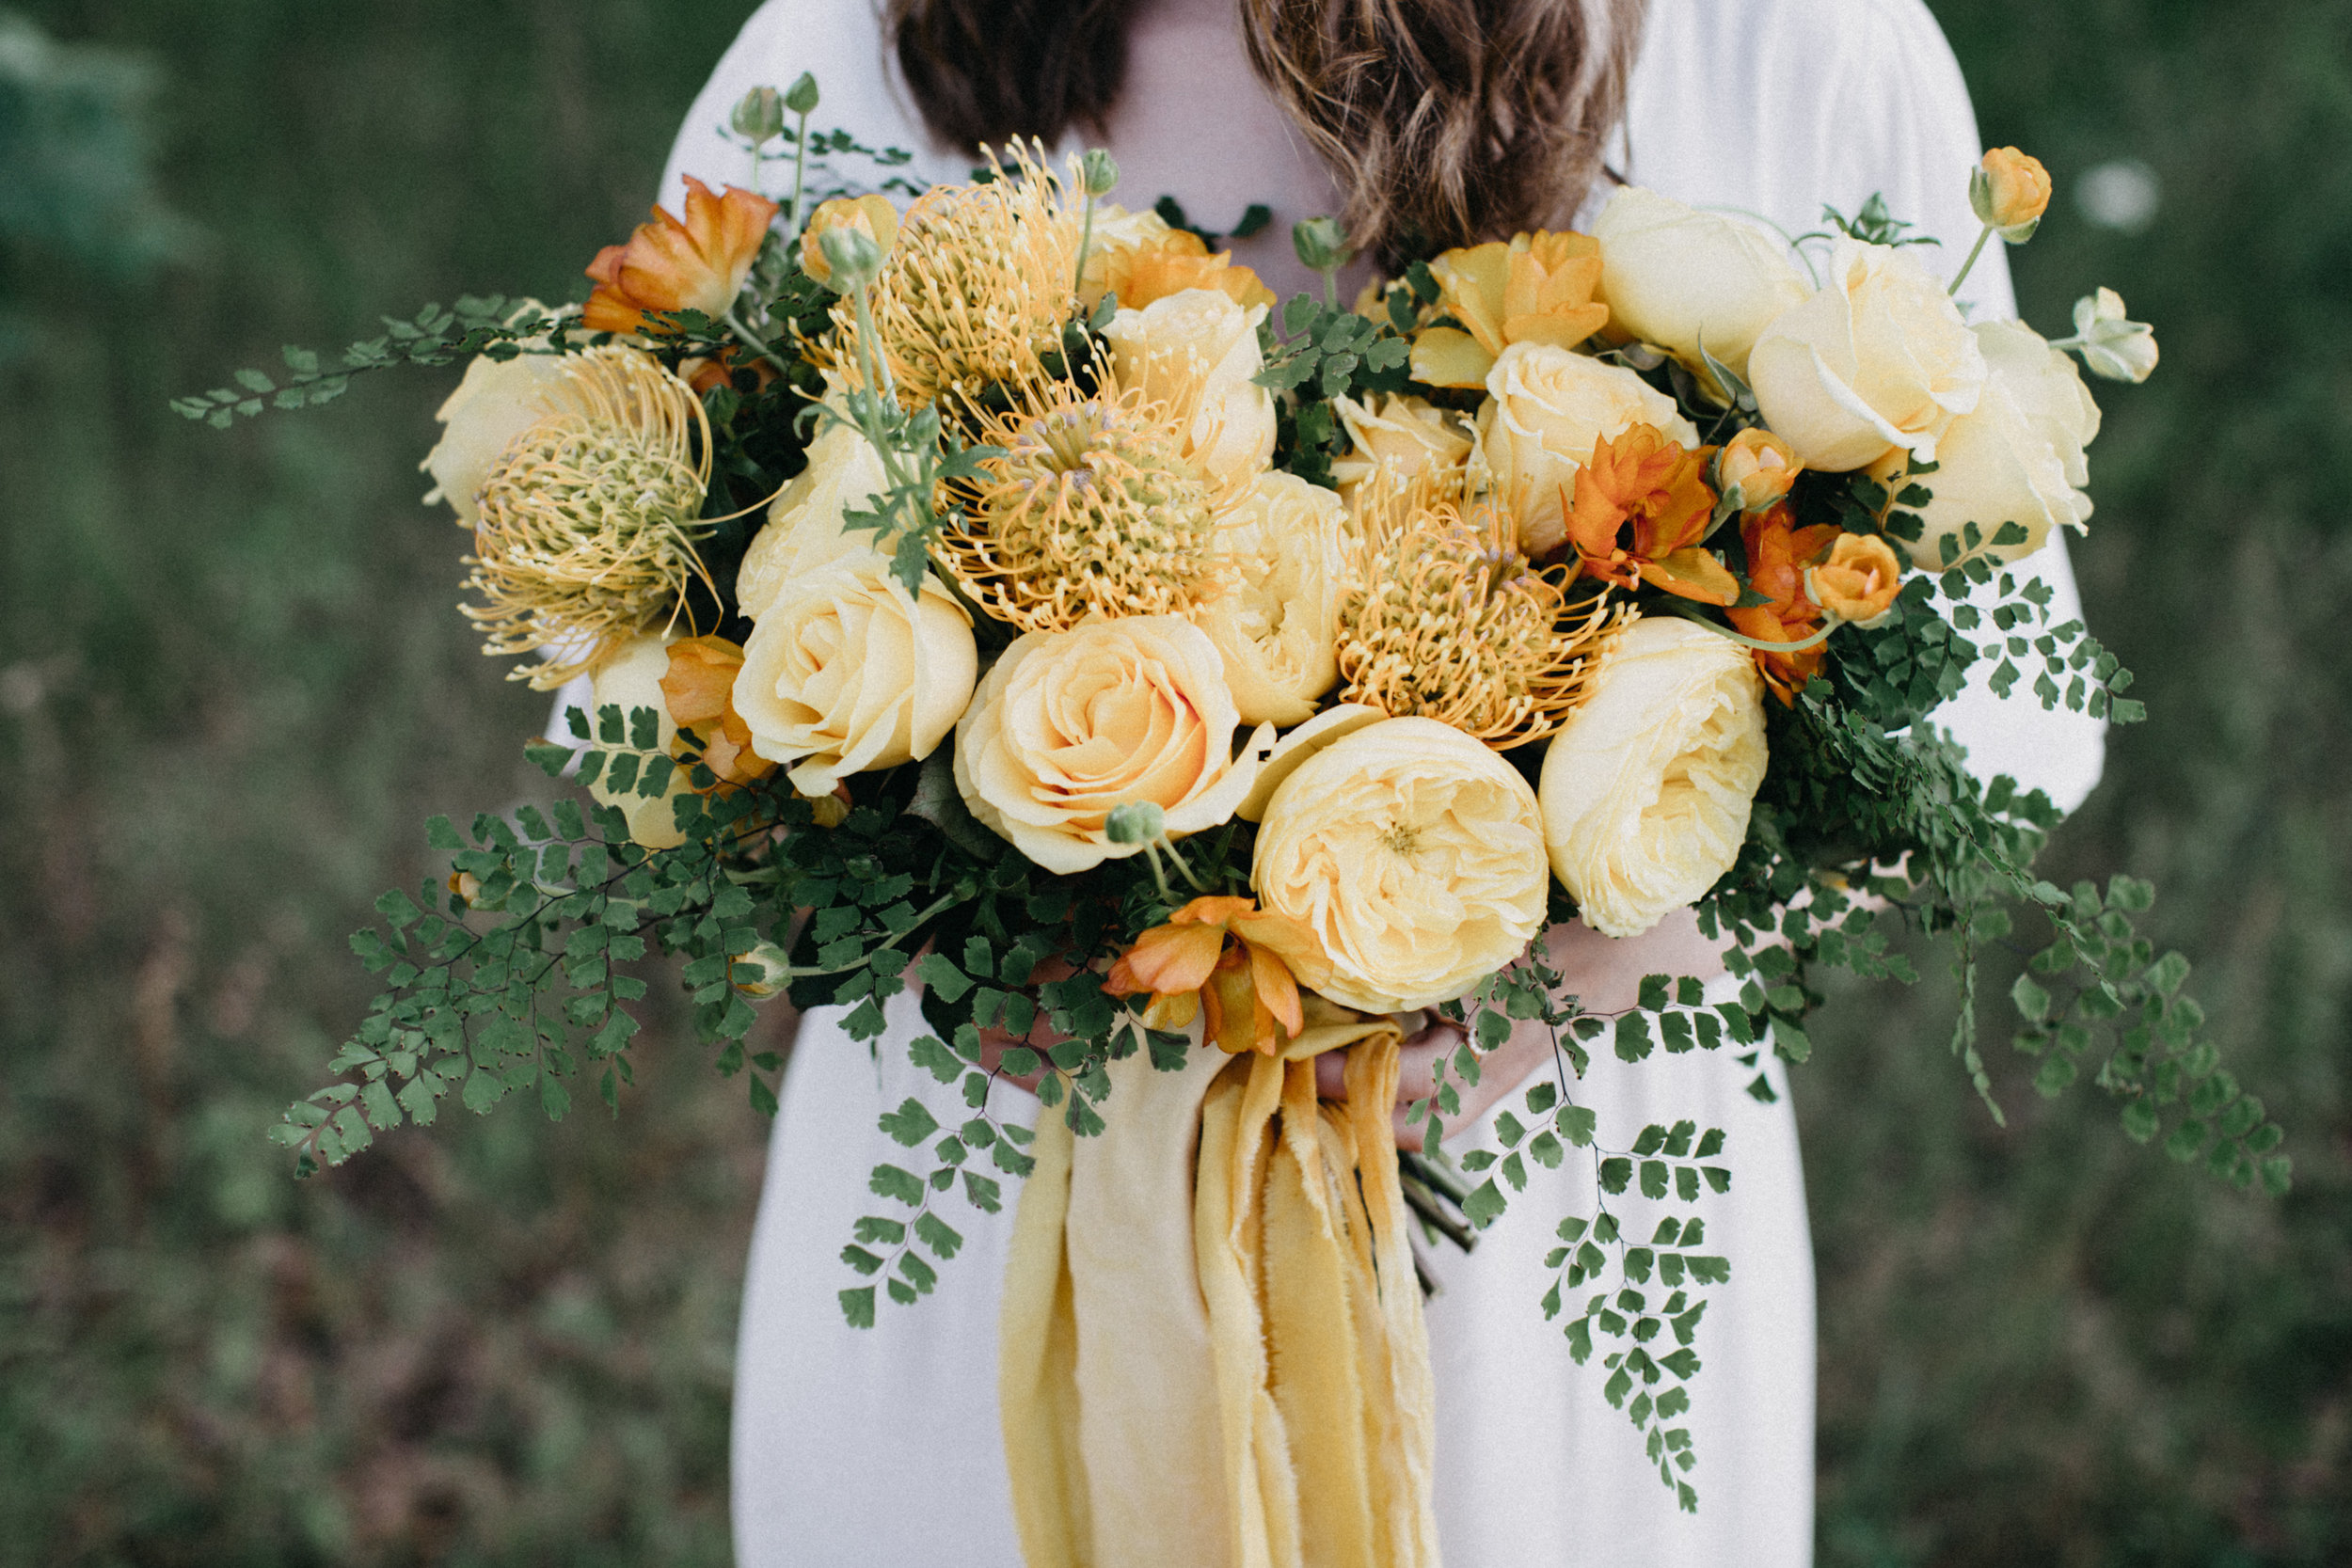 fern and floret botanical mn fern + floret minnesota wedding florist floral design mn minneapolis mpls st paul sharayah krautkremer britt dezeeuw photography